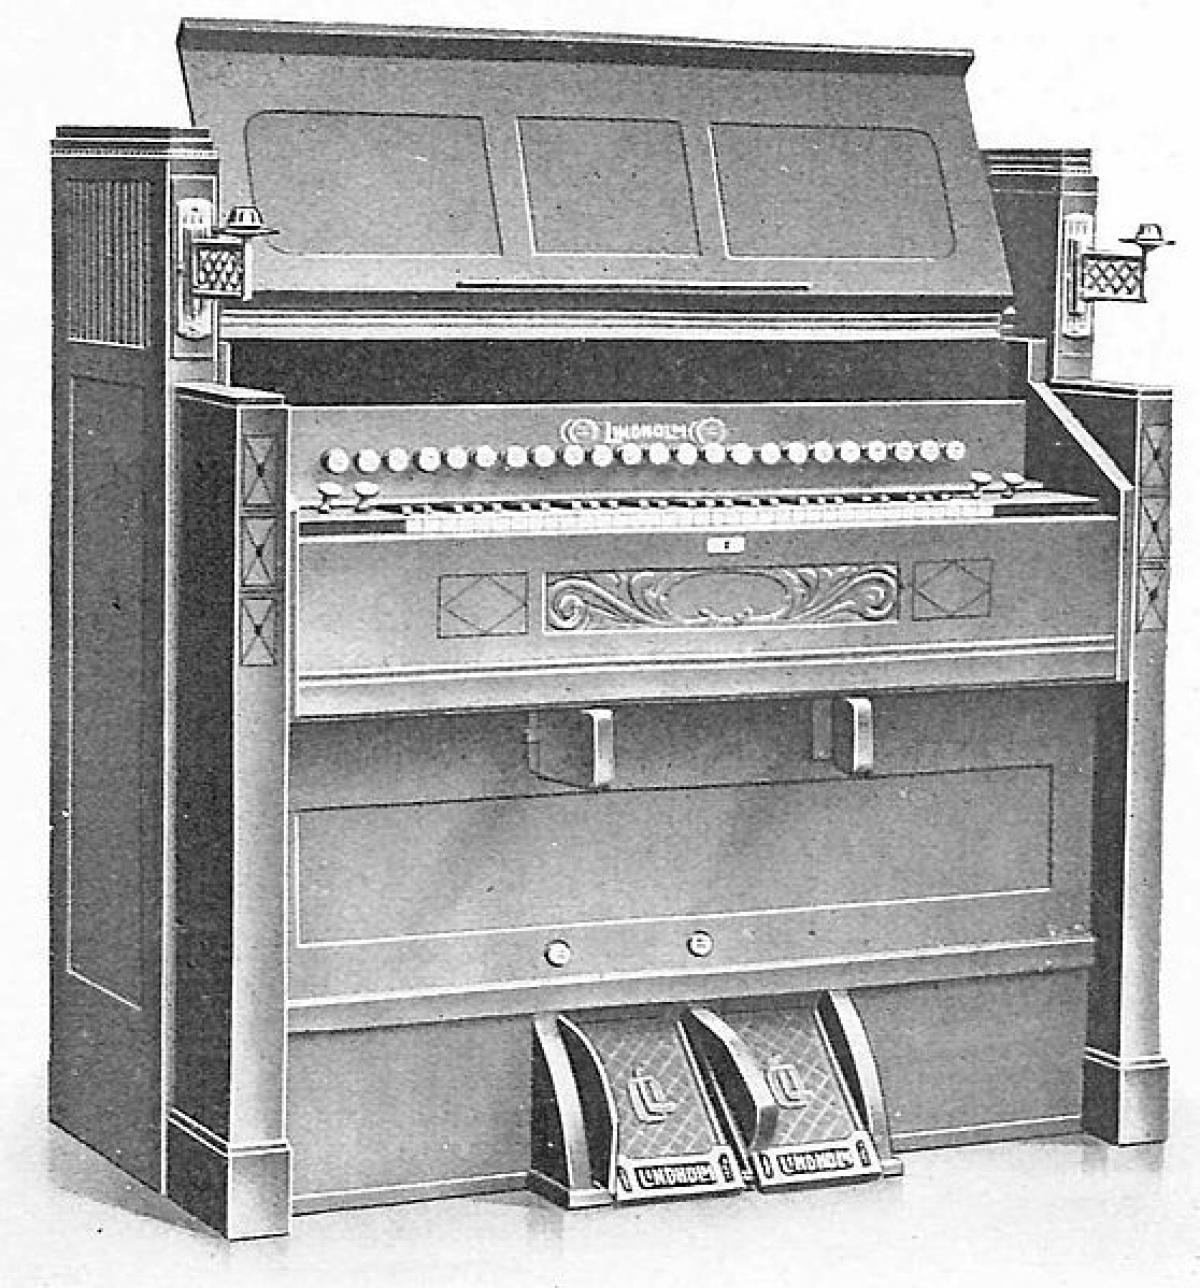 The Harmonium instrument The Mantle